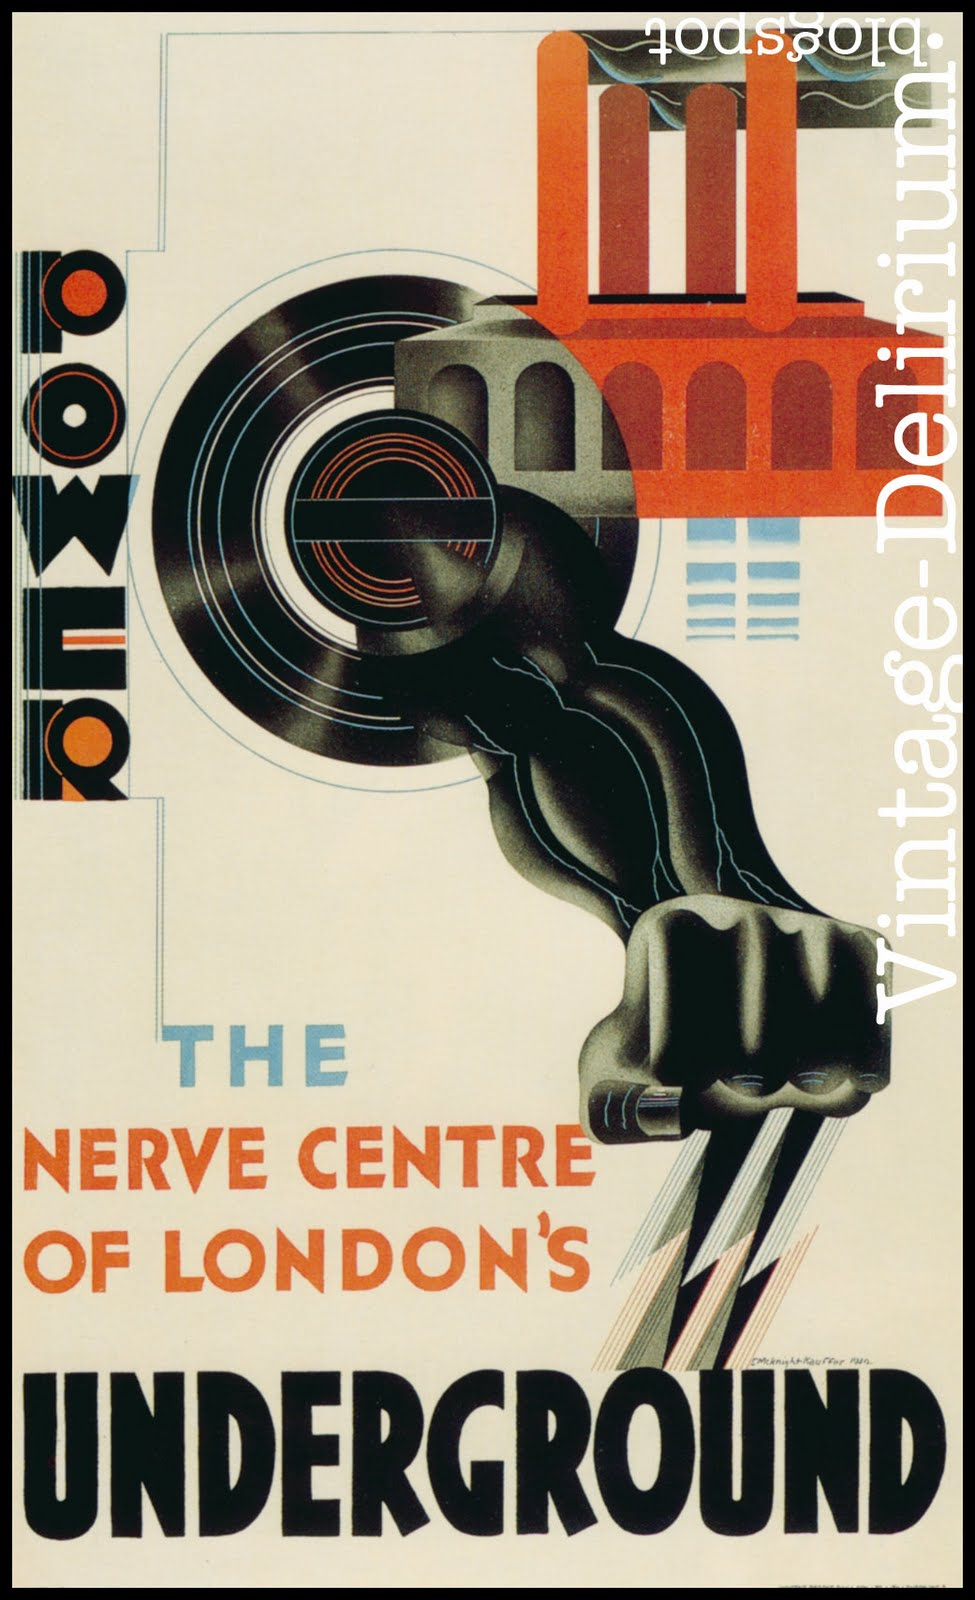 30s poster design - 30s Poster Design Styles By The Bauhaus School Kauffer Achieved Contemporary Developments In Art And